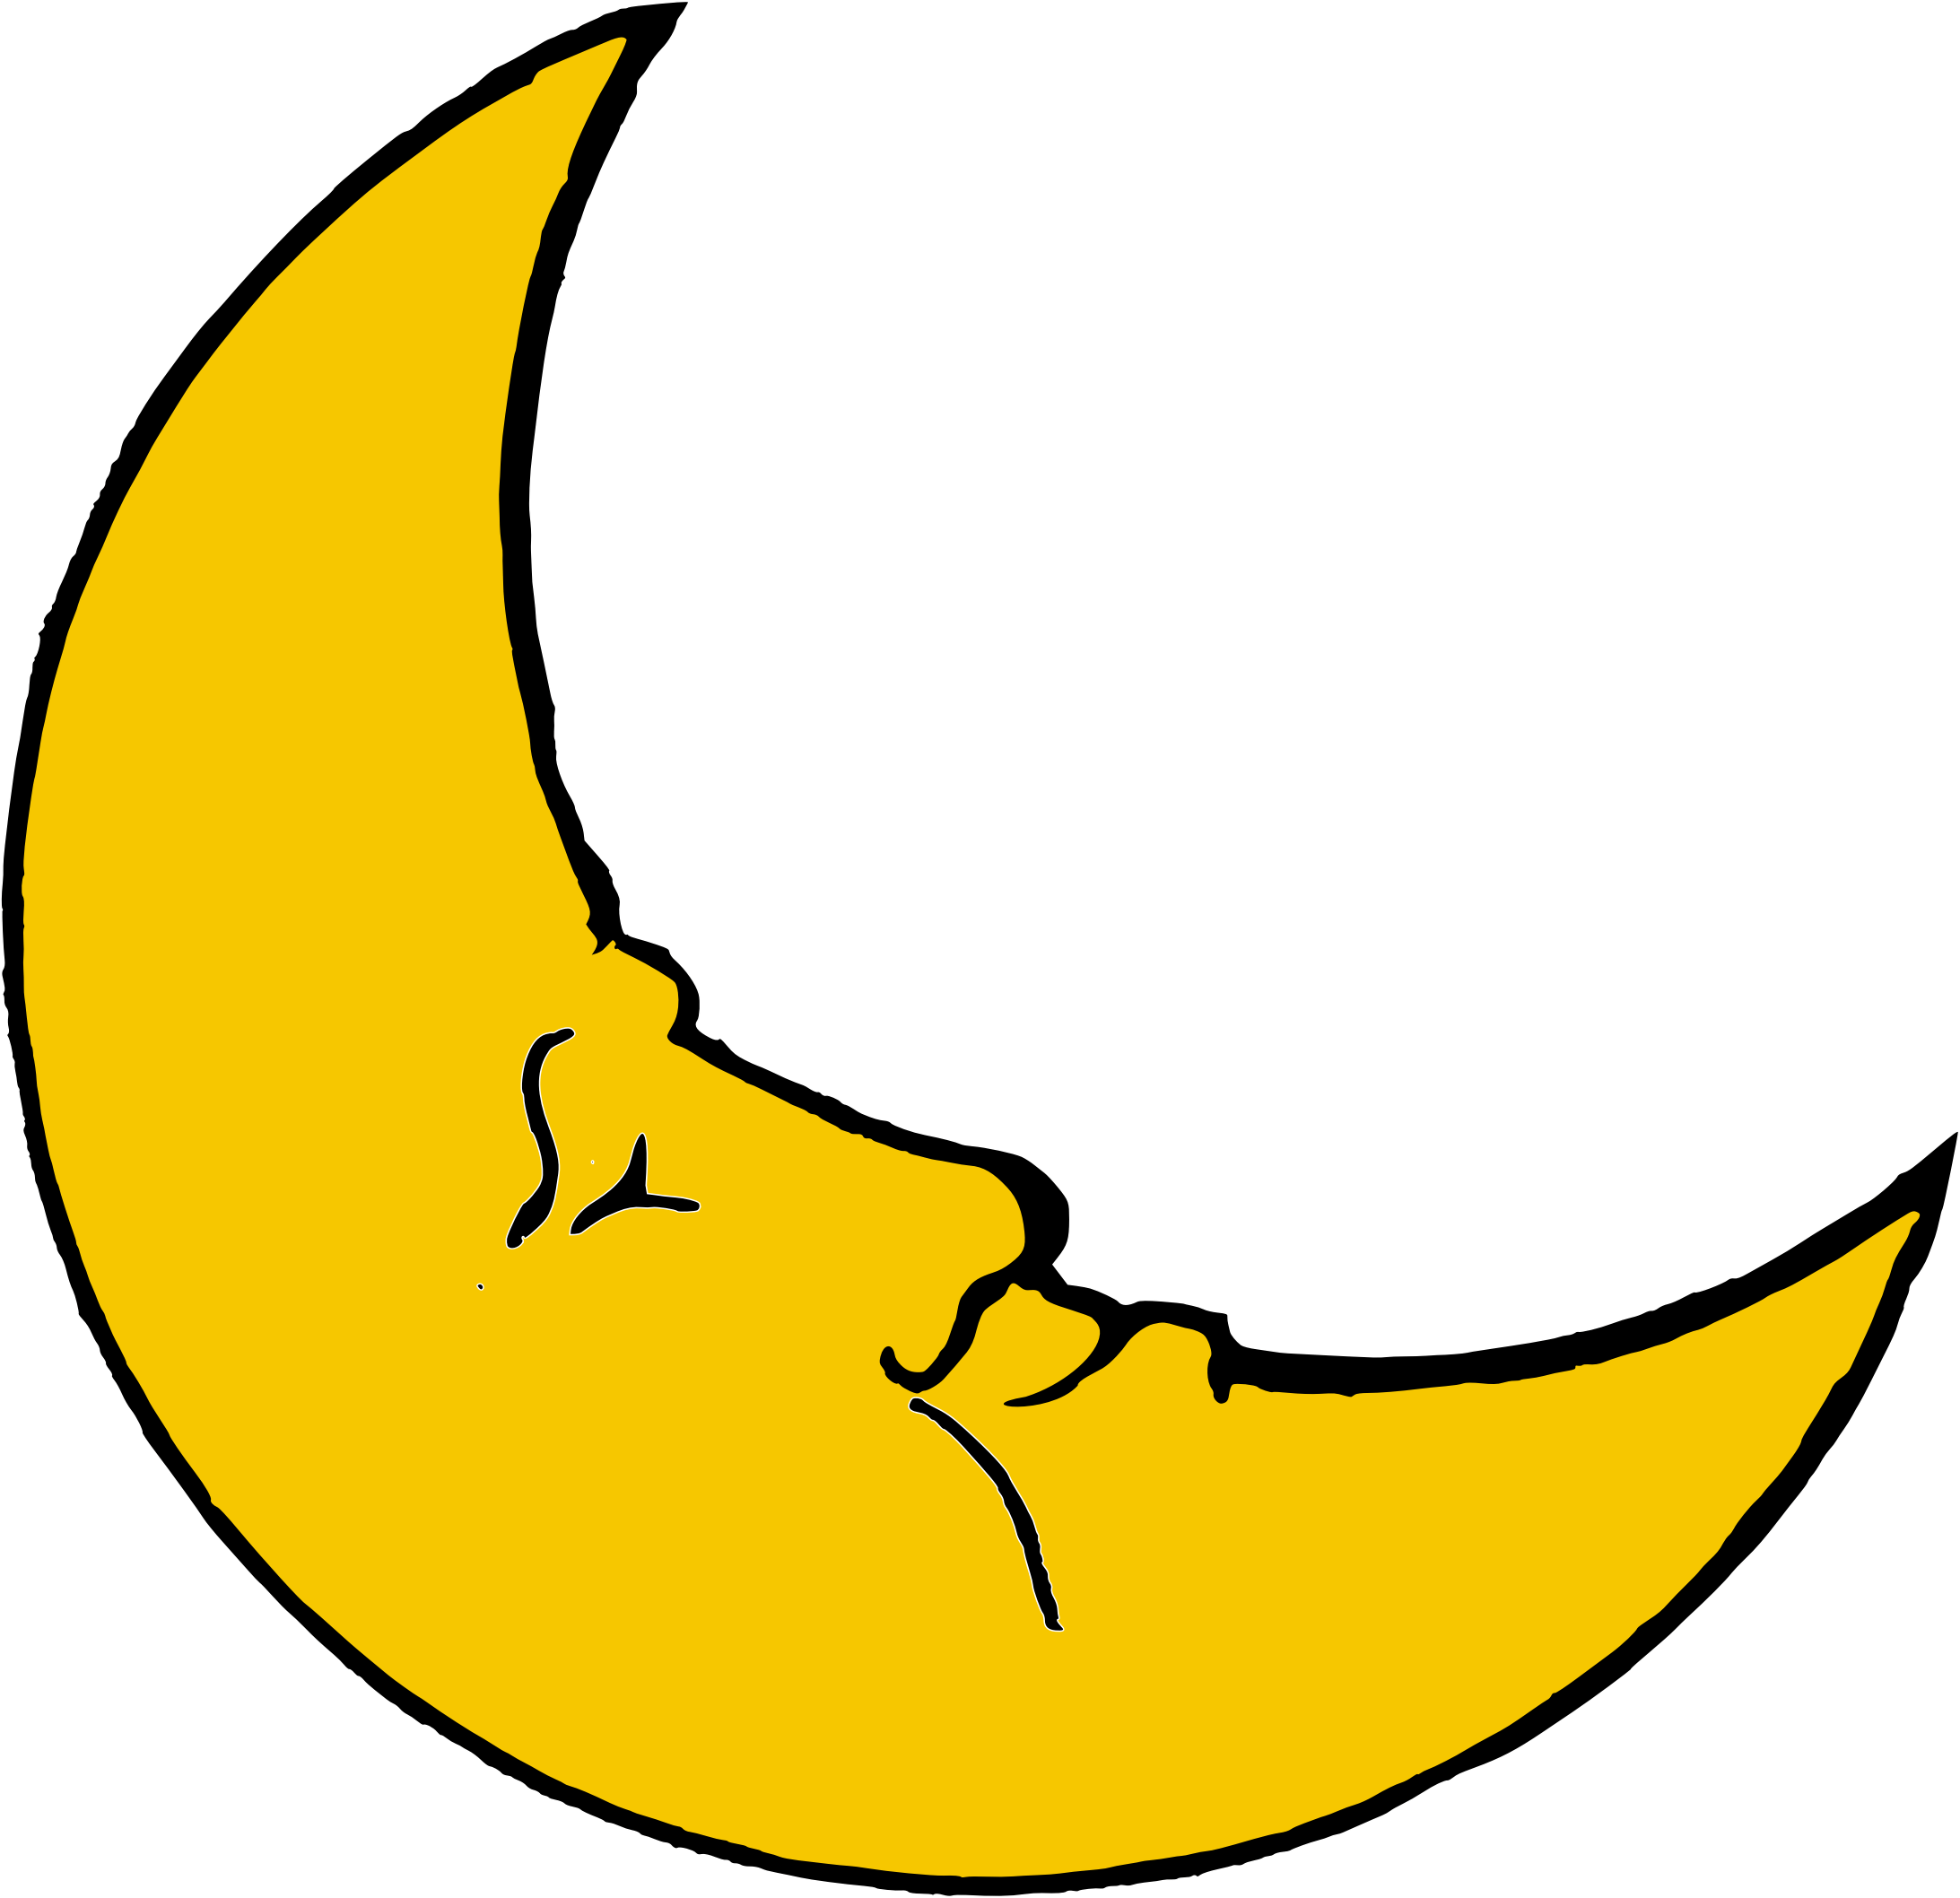 Clipart moon illustration. Detailed with shadow transparent